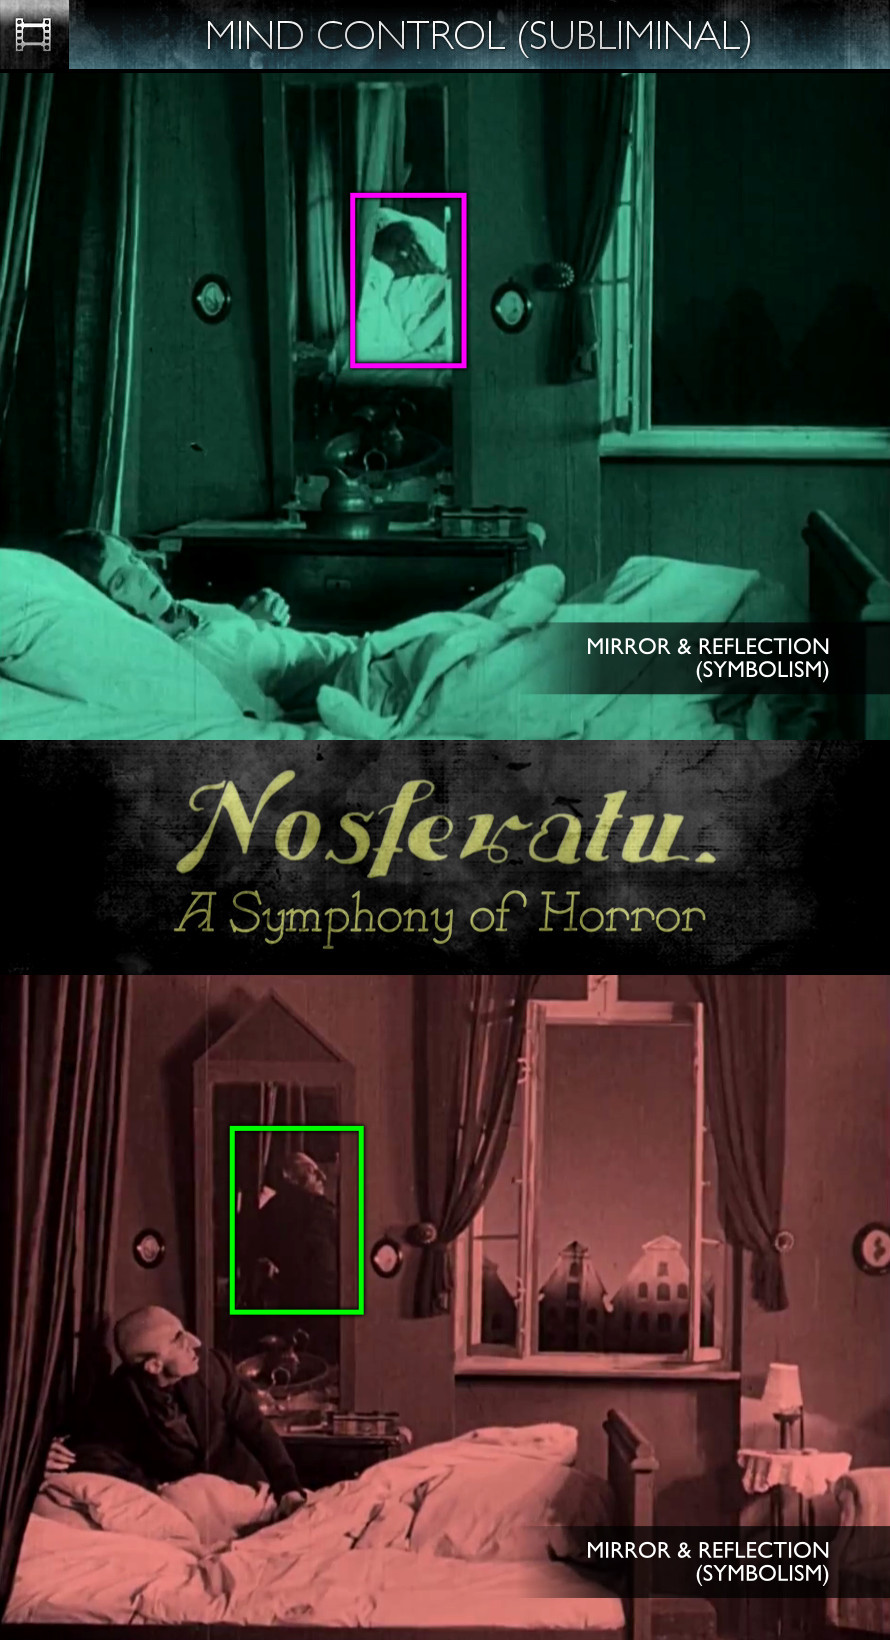 Nosferatu - A Symphony of Horror (1922) - Mind Control - Subliminal